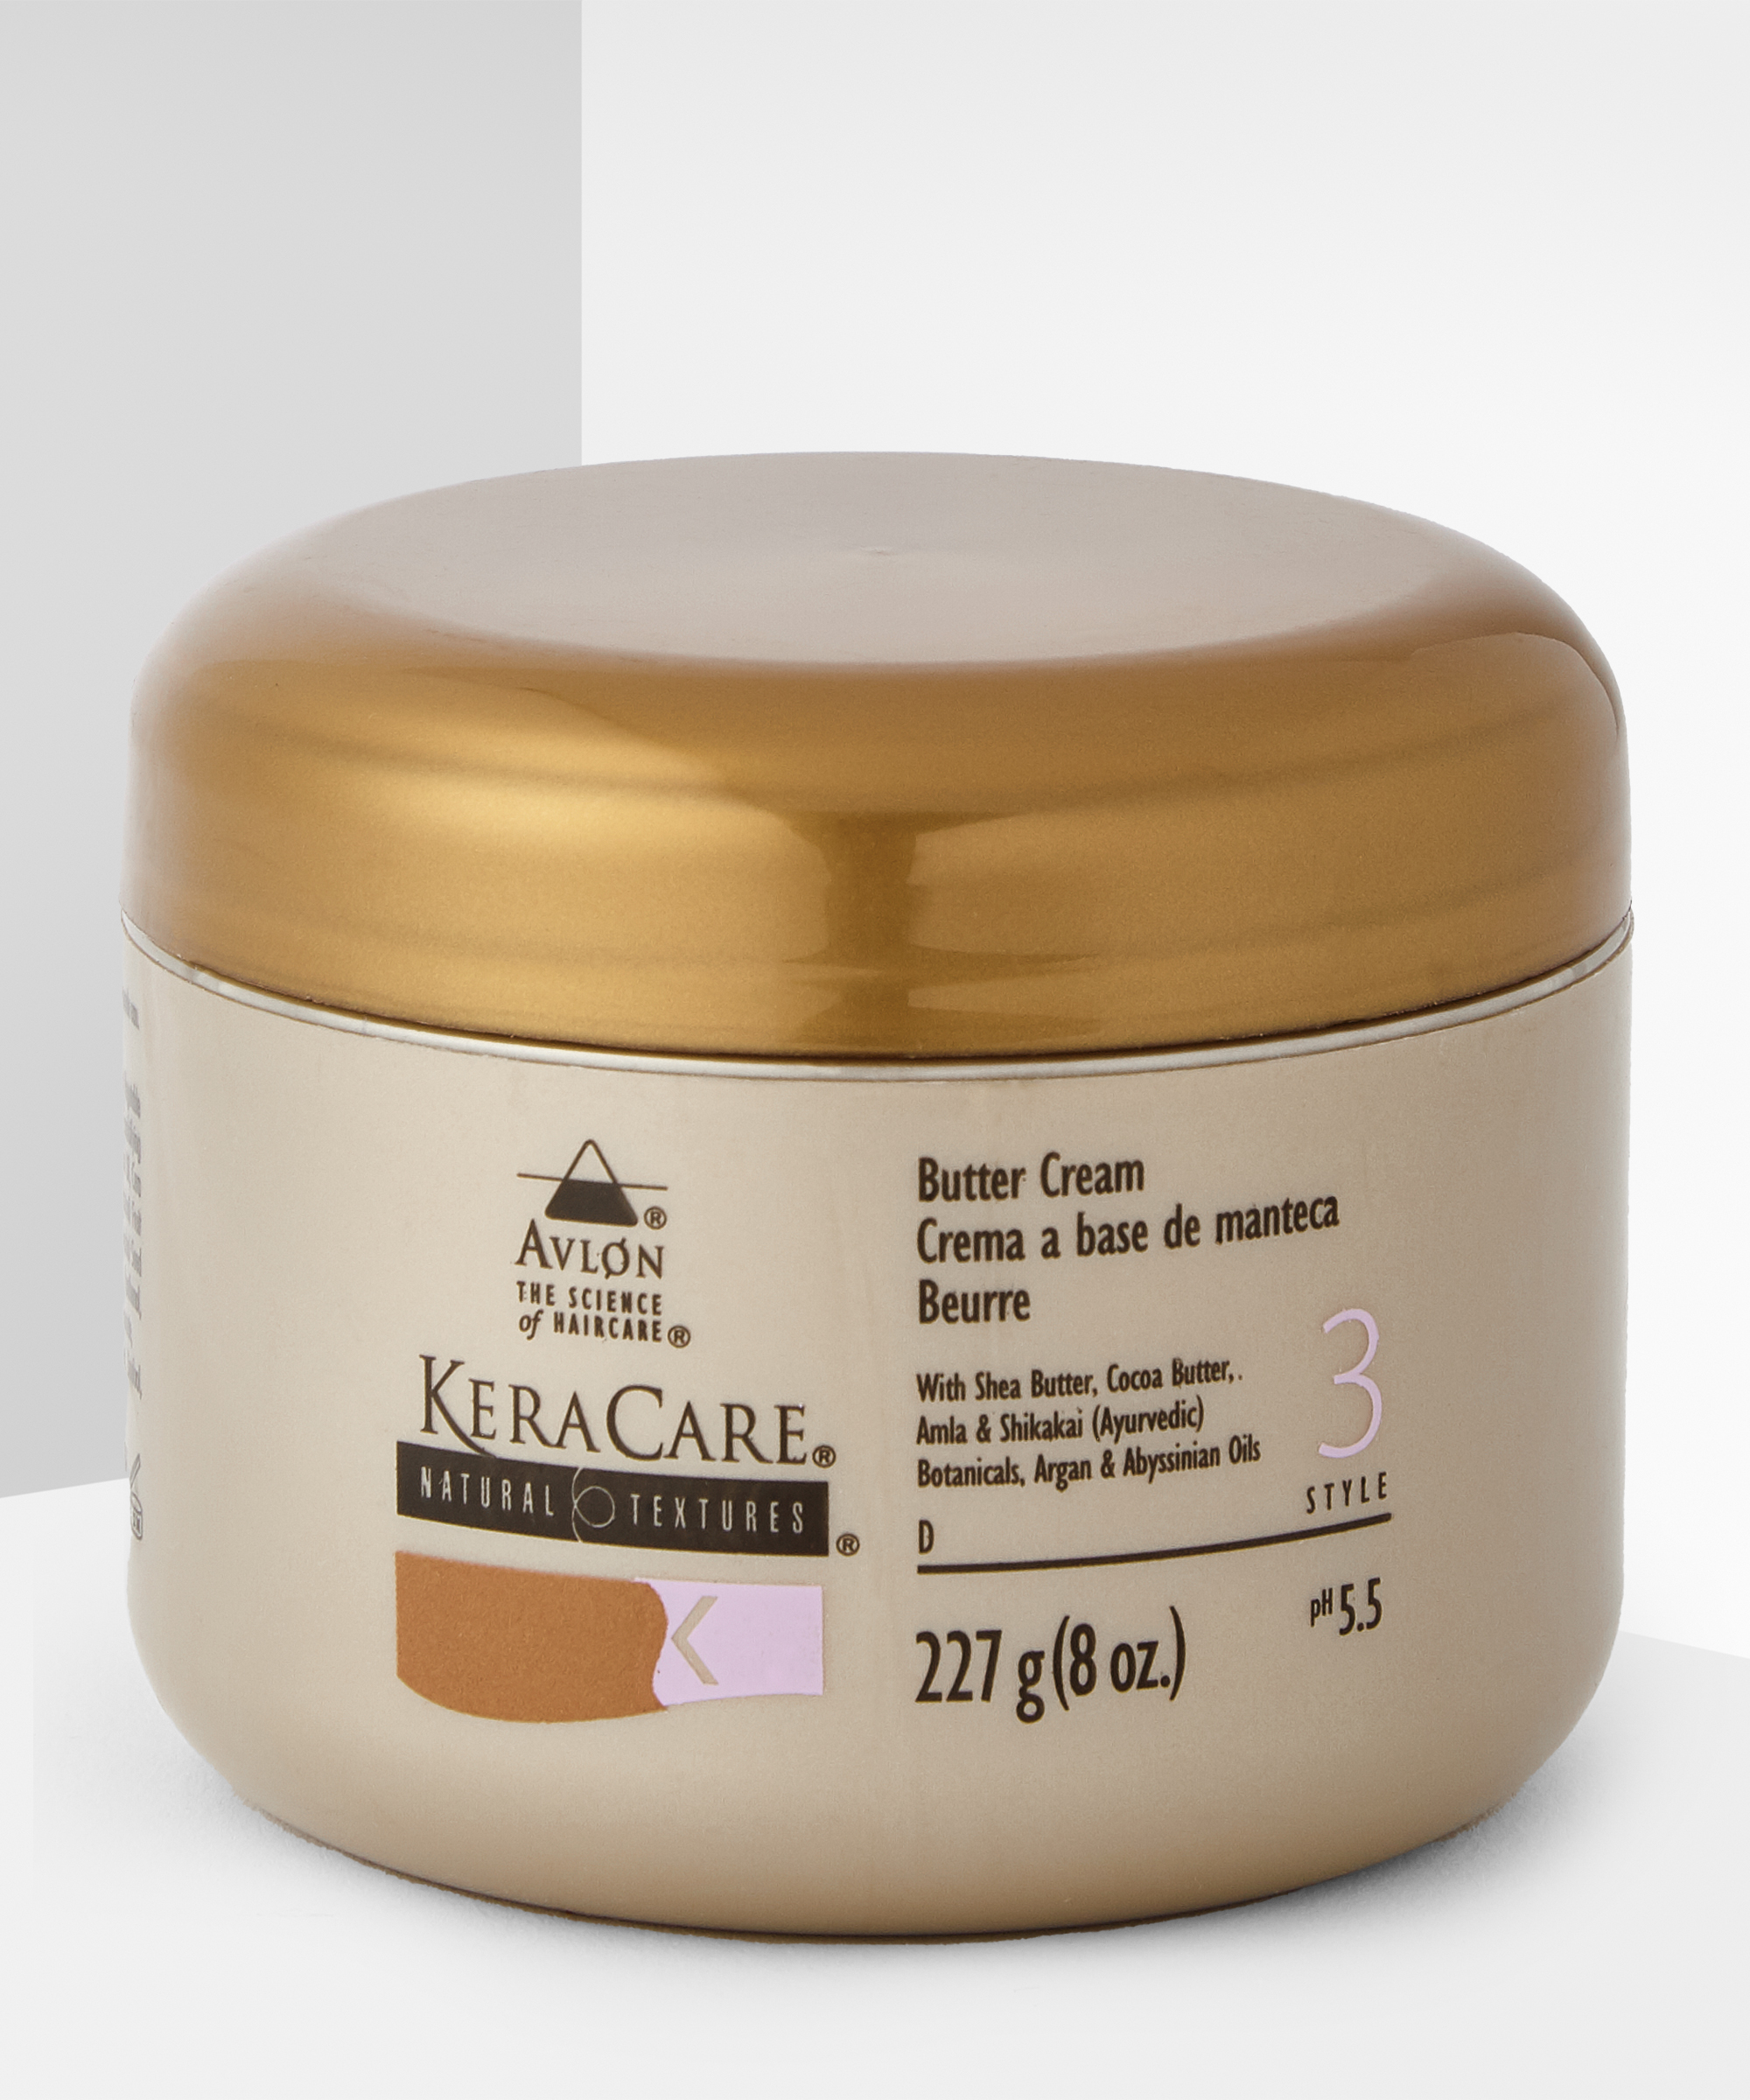 Keracare Butter Cream At Beauty Bay